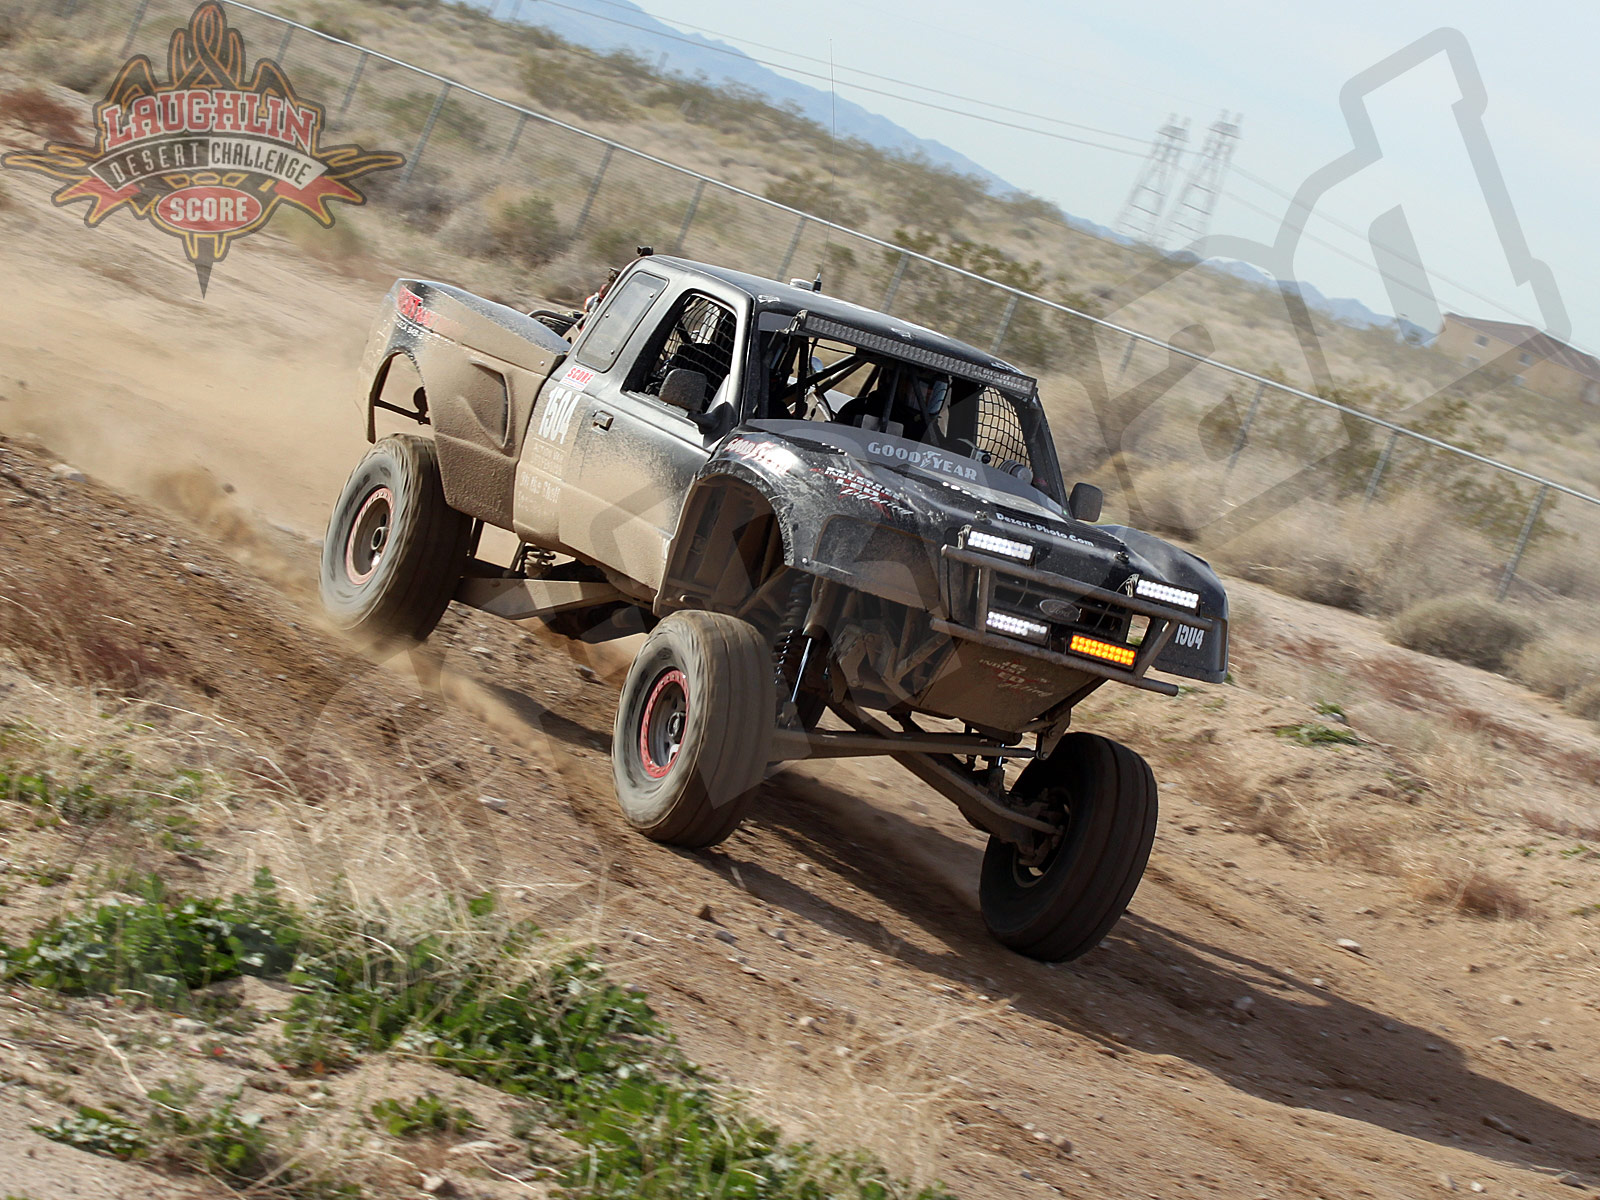 012011or 6585+2011 score laughlin desert challenge+truck classes